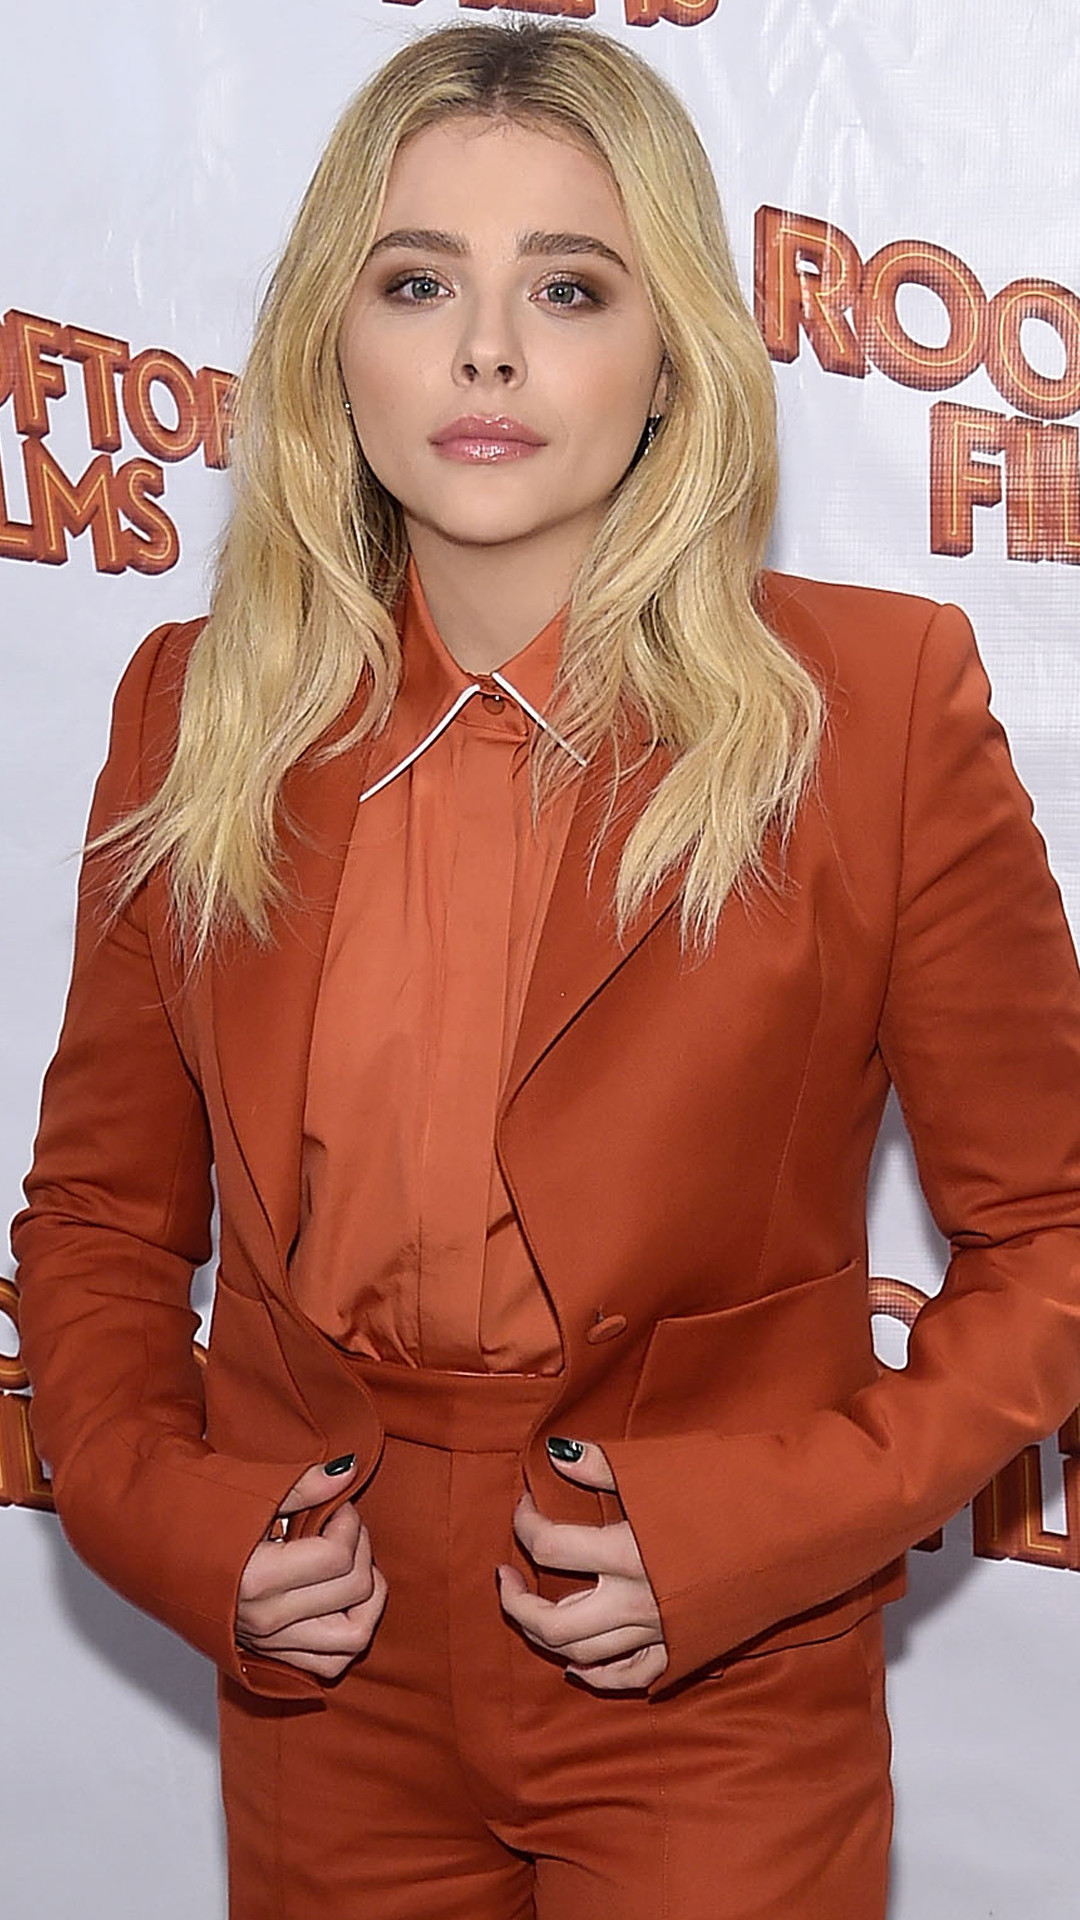 Chloe Grace Moretz, The Miseducation of Cameron Post Premiere